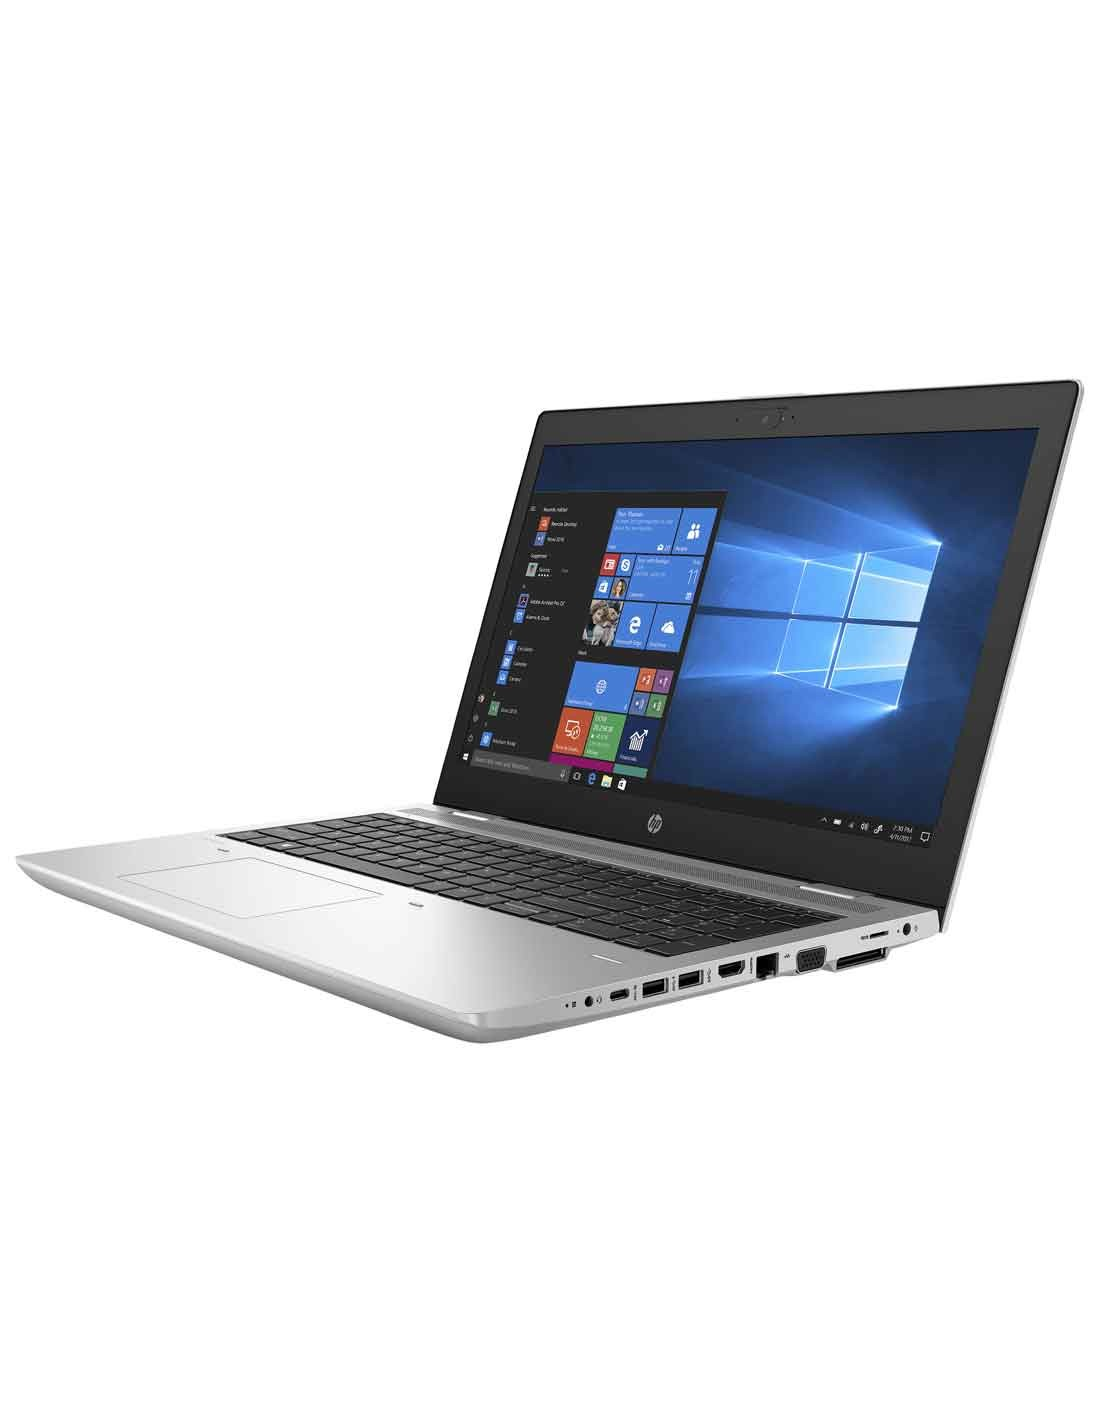 HP ProBook 650 G4 Core i7 images and photos